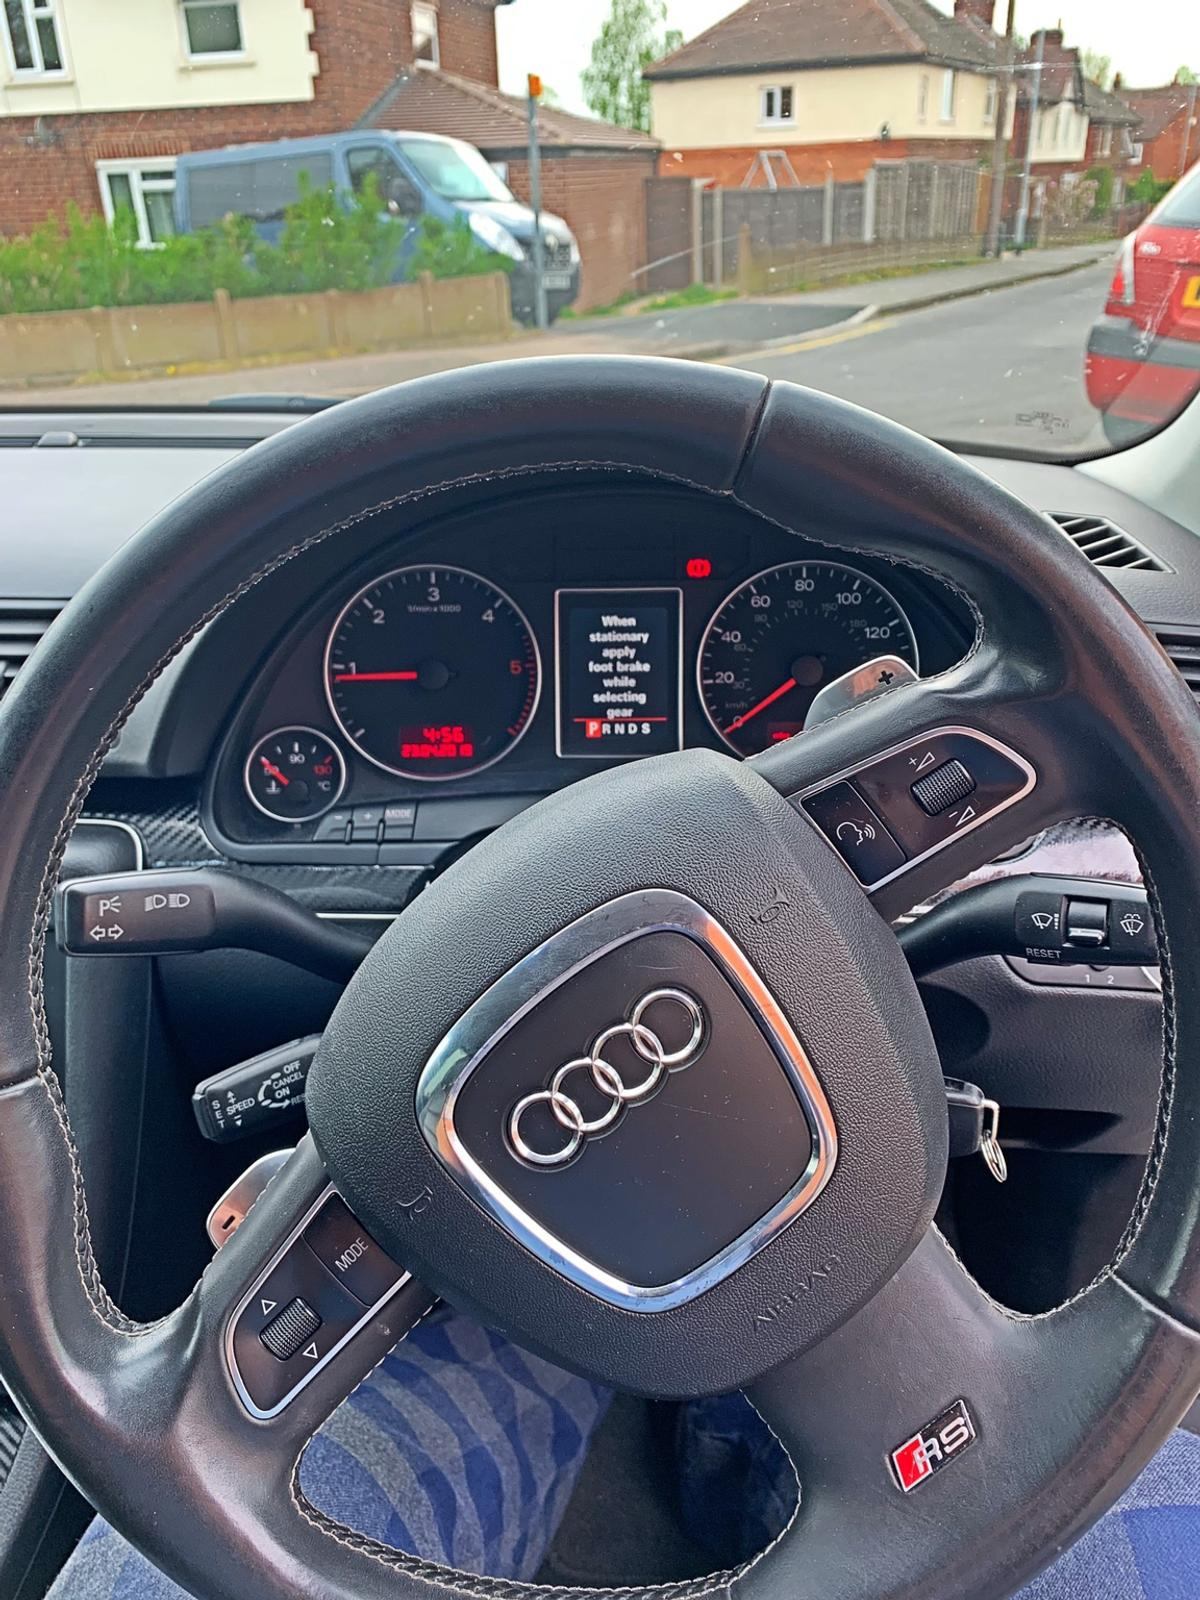 2005 Audi A4 2 0 tdi in B79 Tamworth for free for sale - Shpock